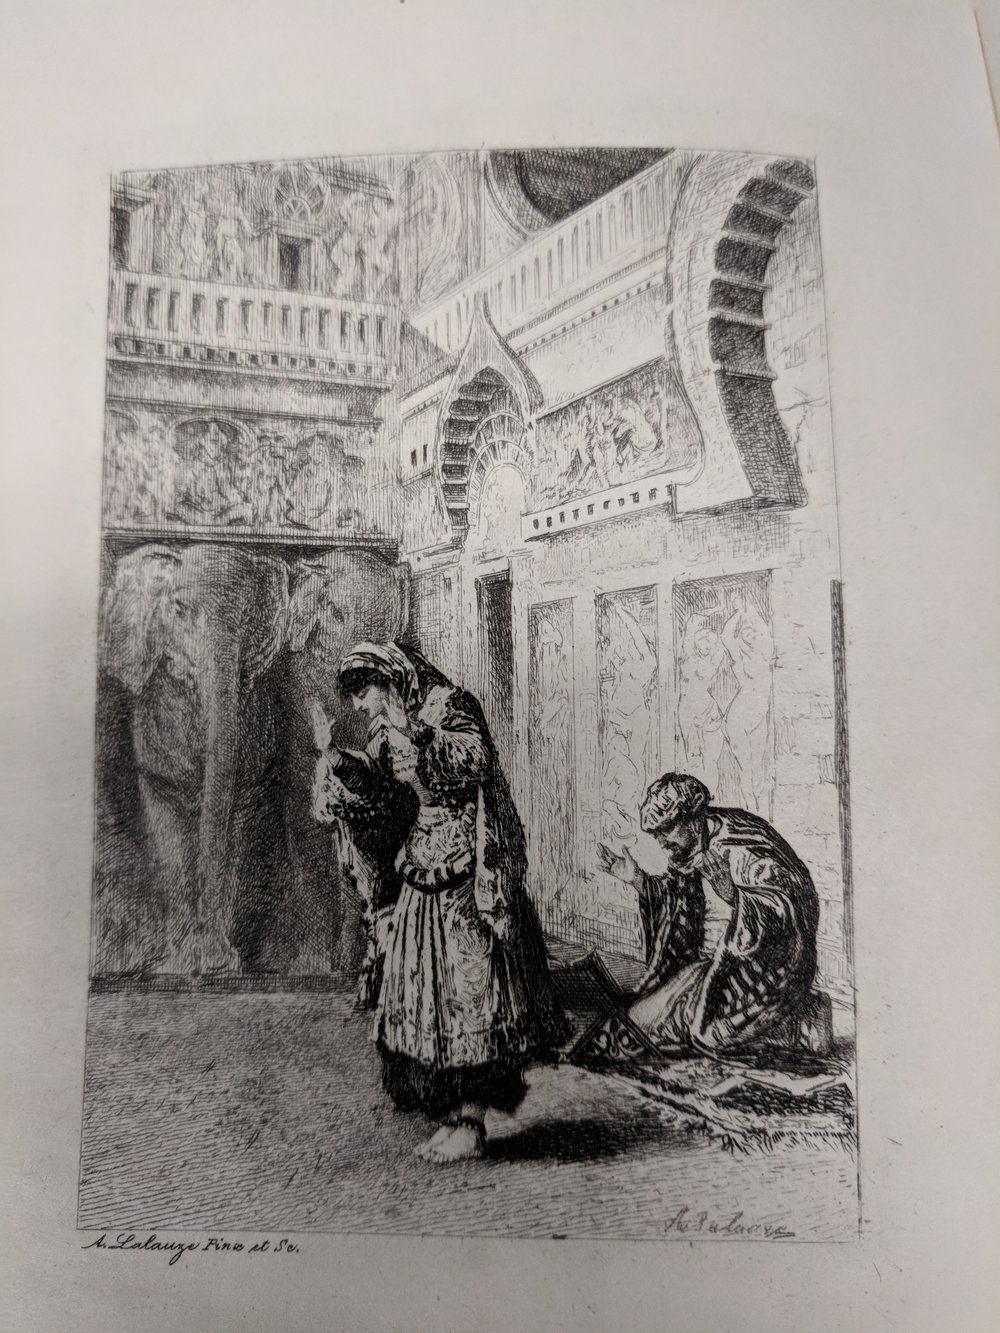 Tales from the Arabic of the Breslau and Calcutta (1814-18) editions of the Book of the thousand nights and one night not occurring in the other printed texts of the work, now first done into English by John Payne. London, 1901.